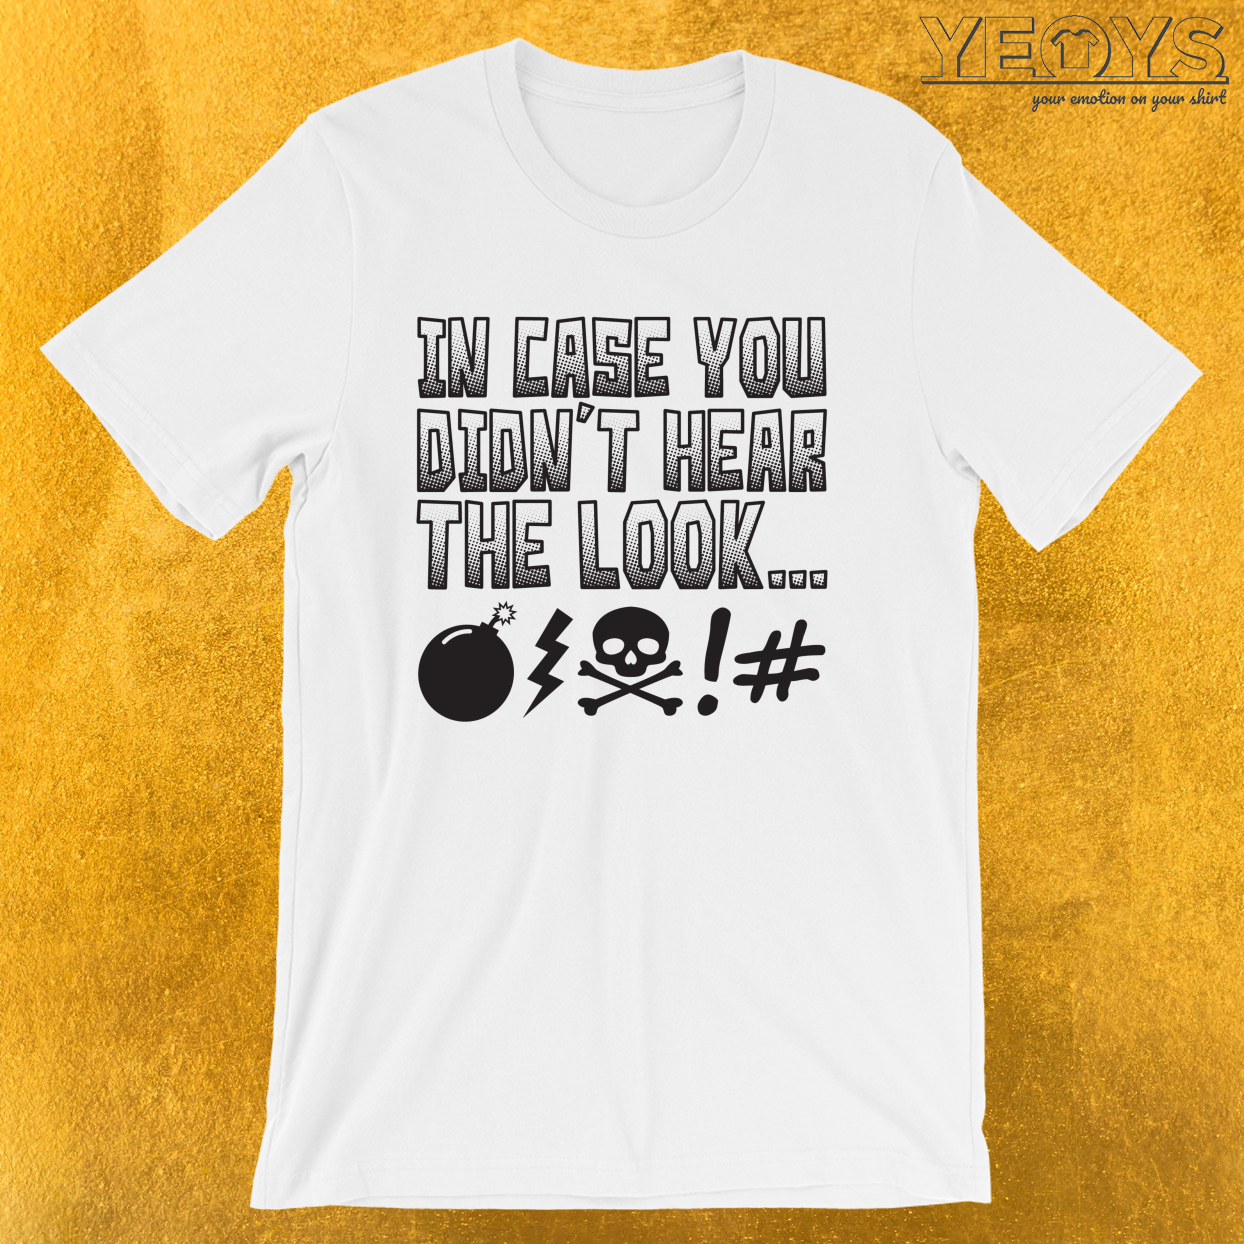 In Case You Didn't Hear The Look – Customer Service Quotes Tee